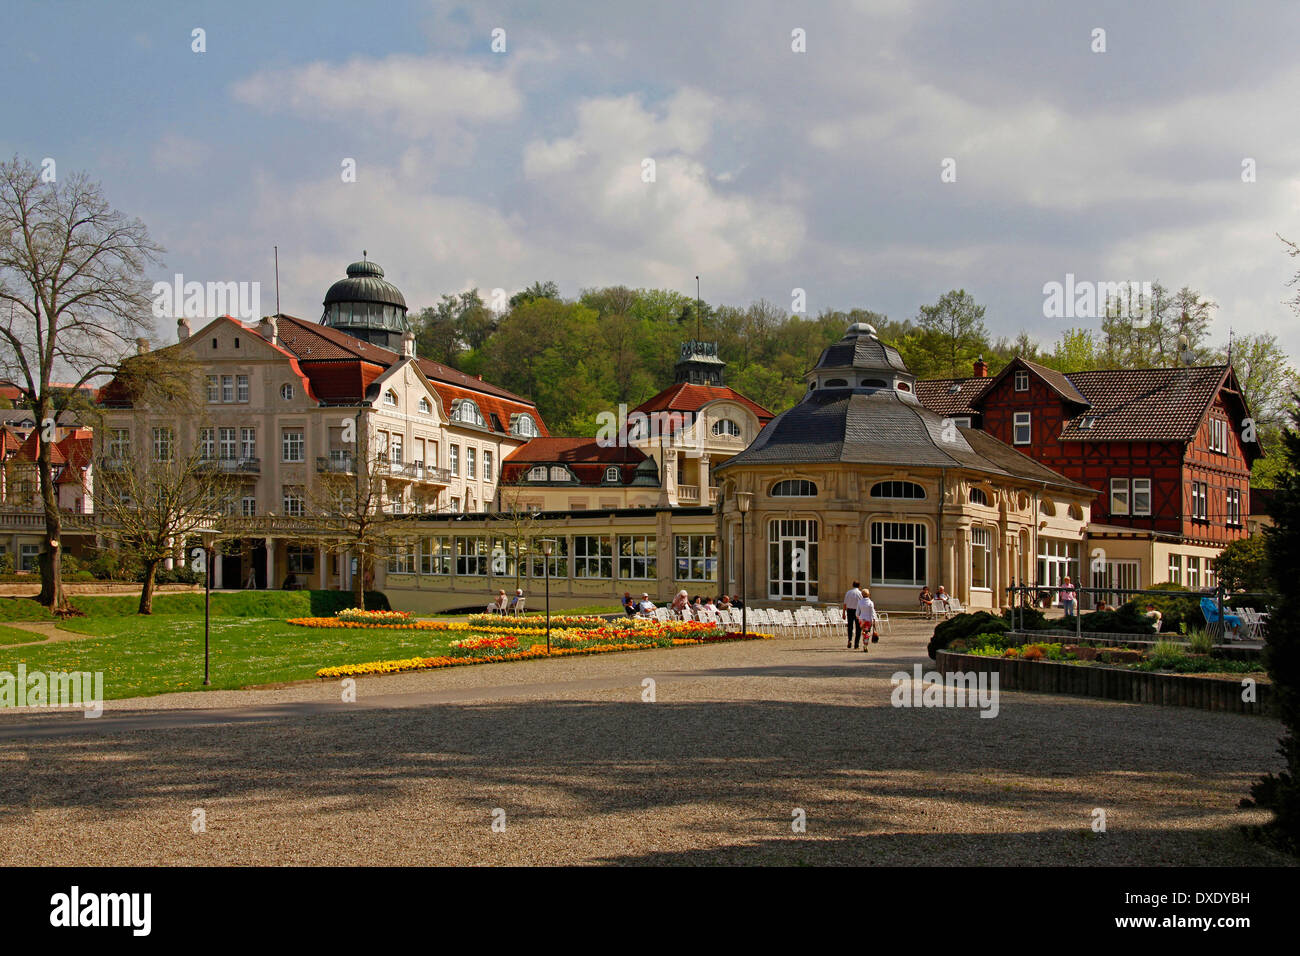 Spa gardens, casino, Bad Salzschlirf, district of Fulda, Hesse, Germany Stock Photo